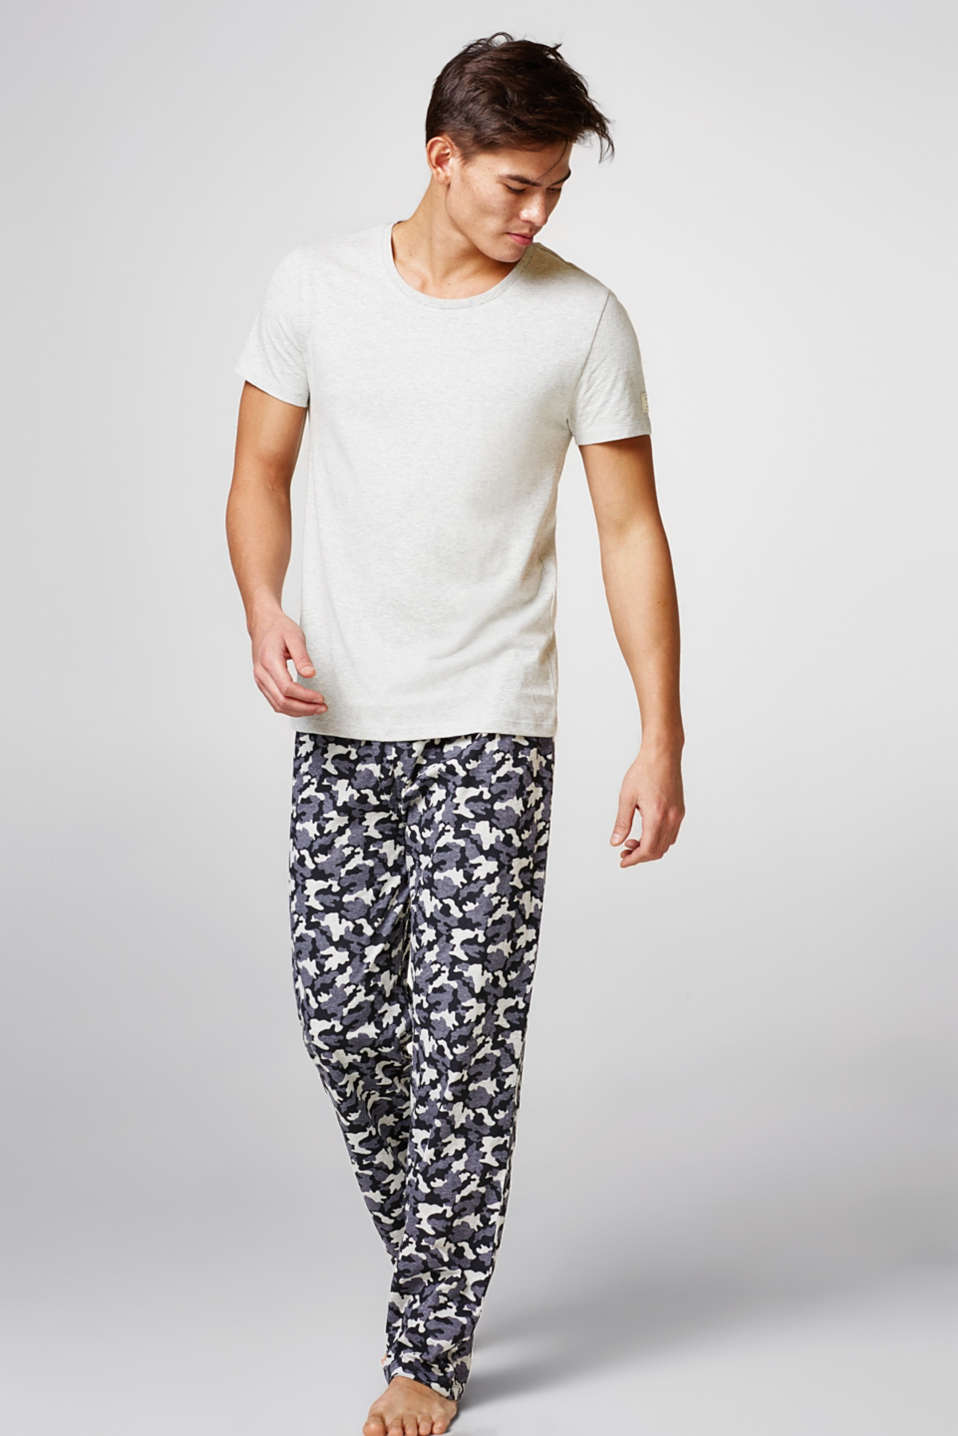 Esprit - Pyjamas with printed bottoms, blended cotton